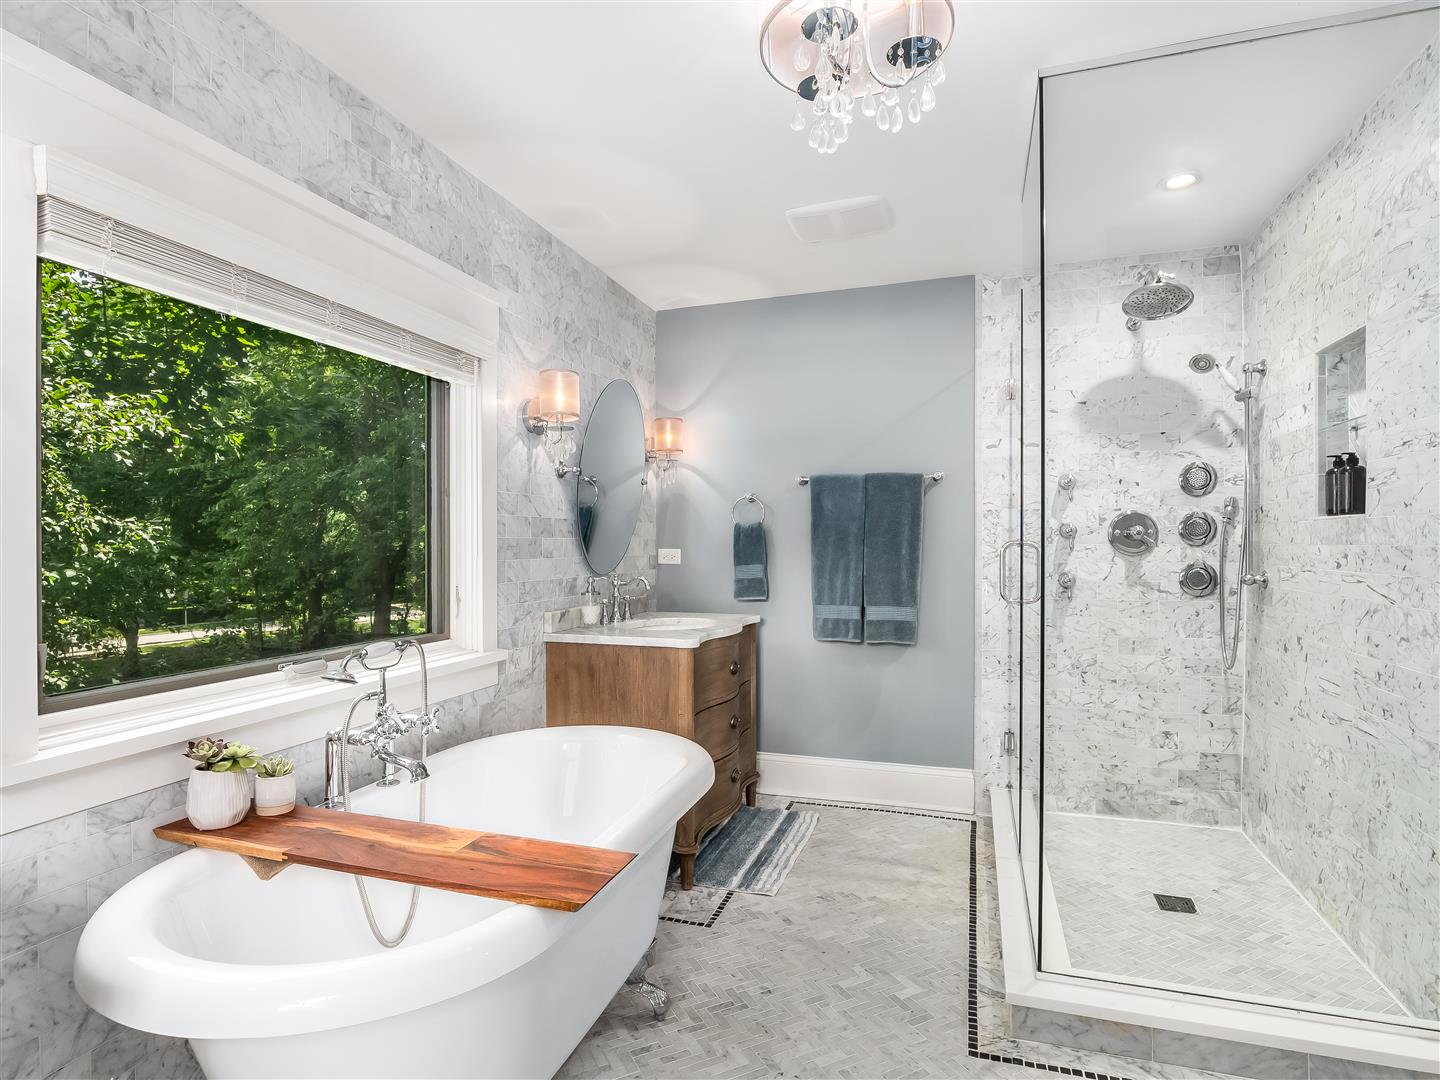 Luxury marble bath design with claw foot tub,  glass surround shower and natural wood elements